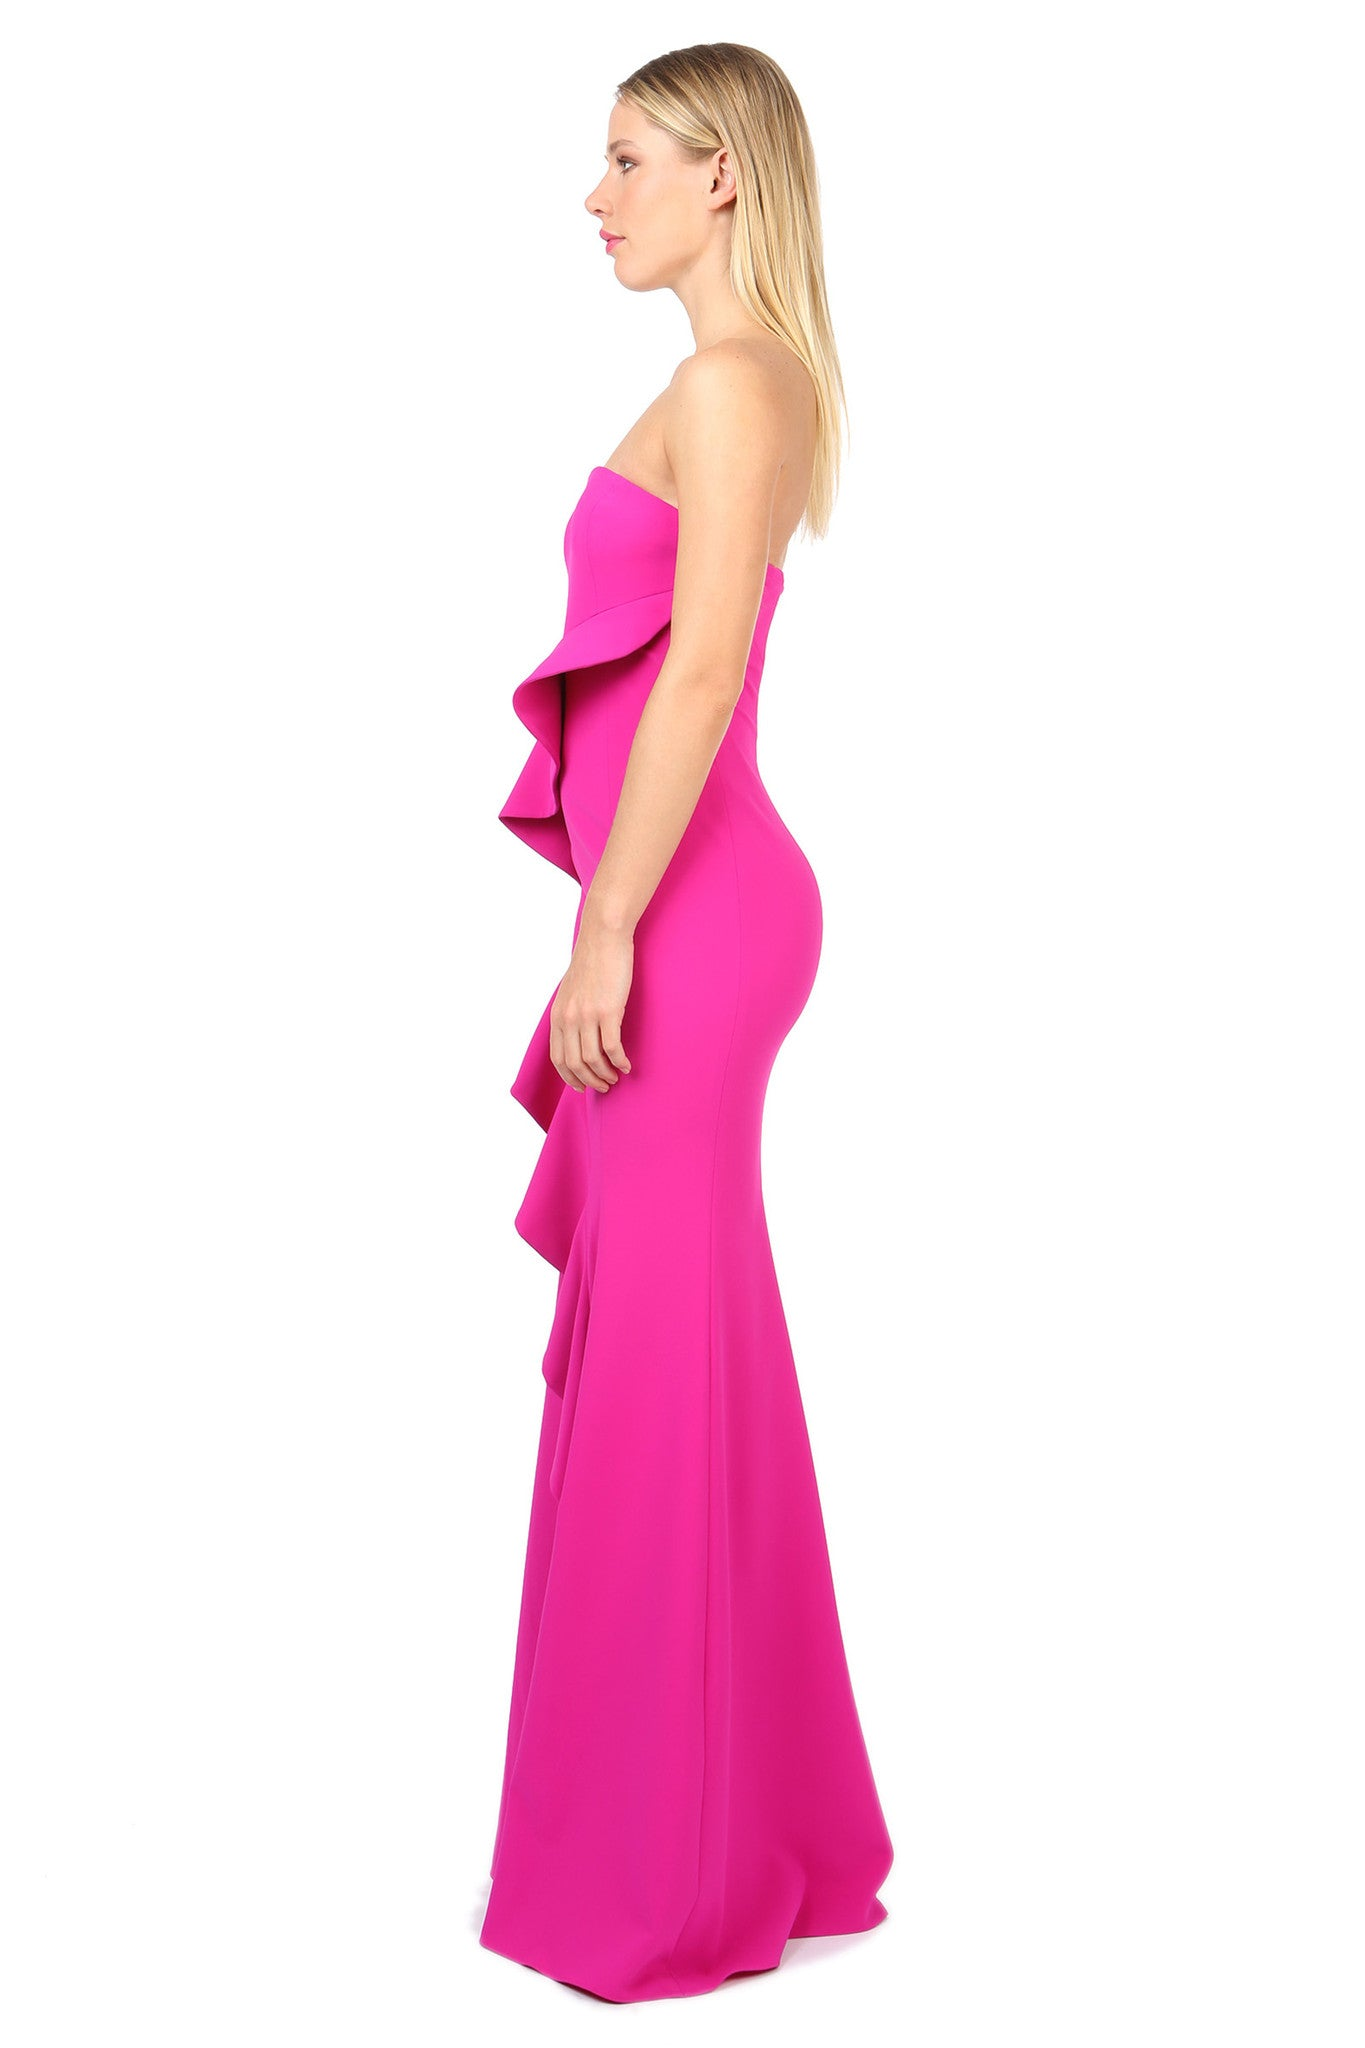 Jay Godfrey Fuchsia Strapless Ruffle Gown - Side View